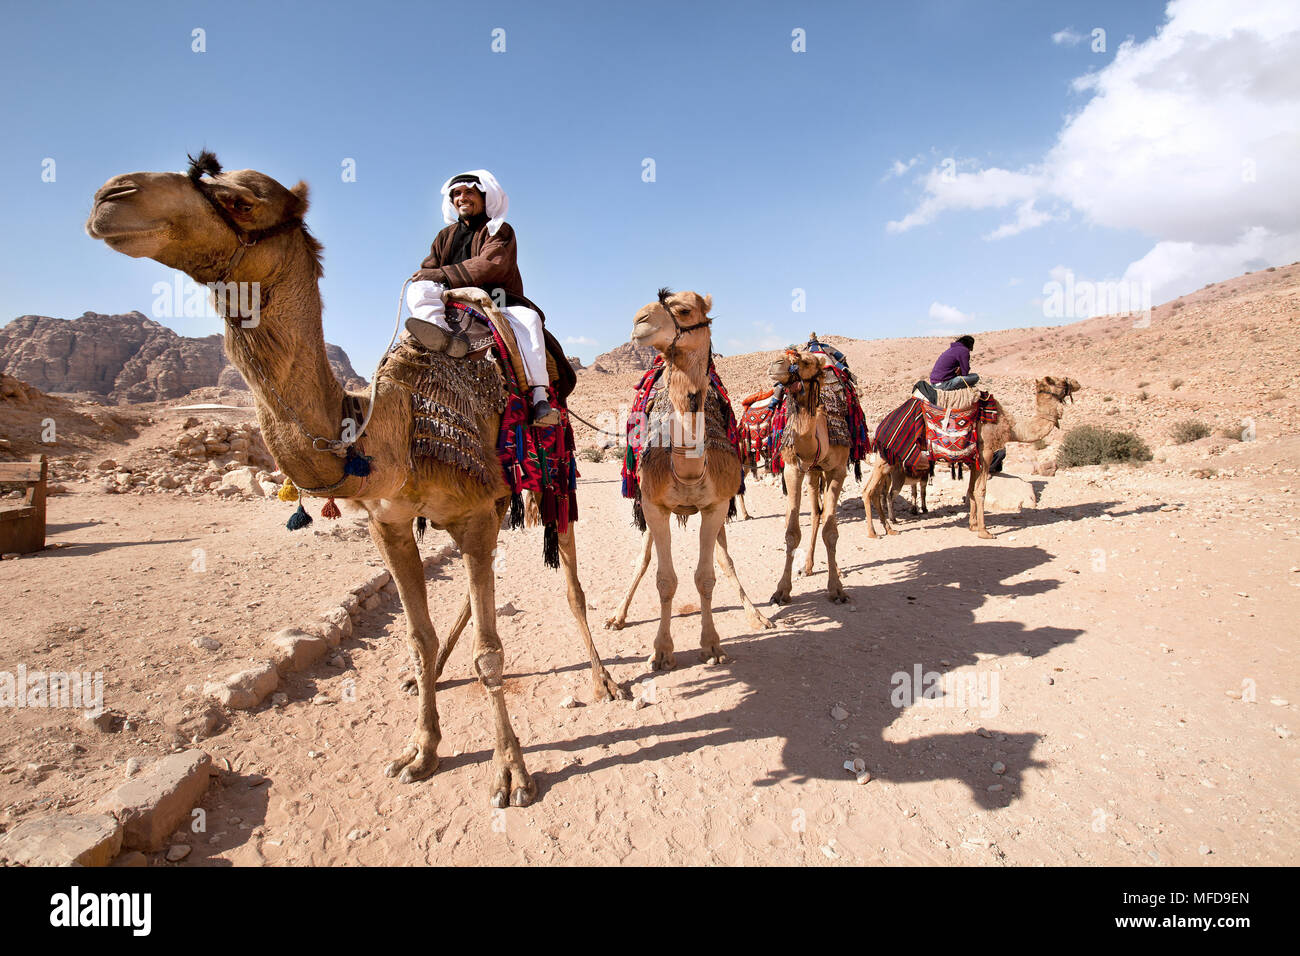 Portrait of a wealthy Bedouin with his camels in a desert Stock Photo